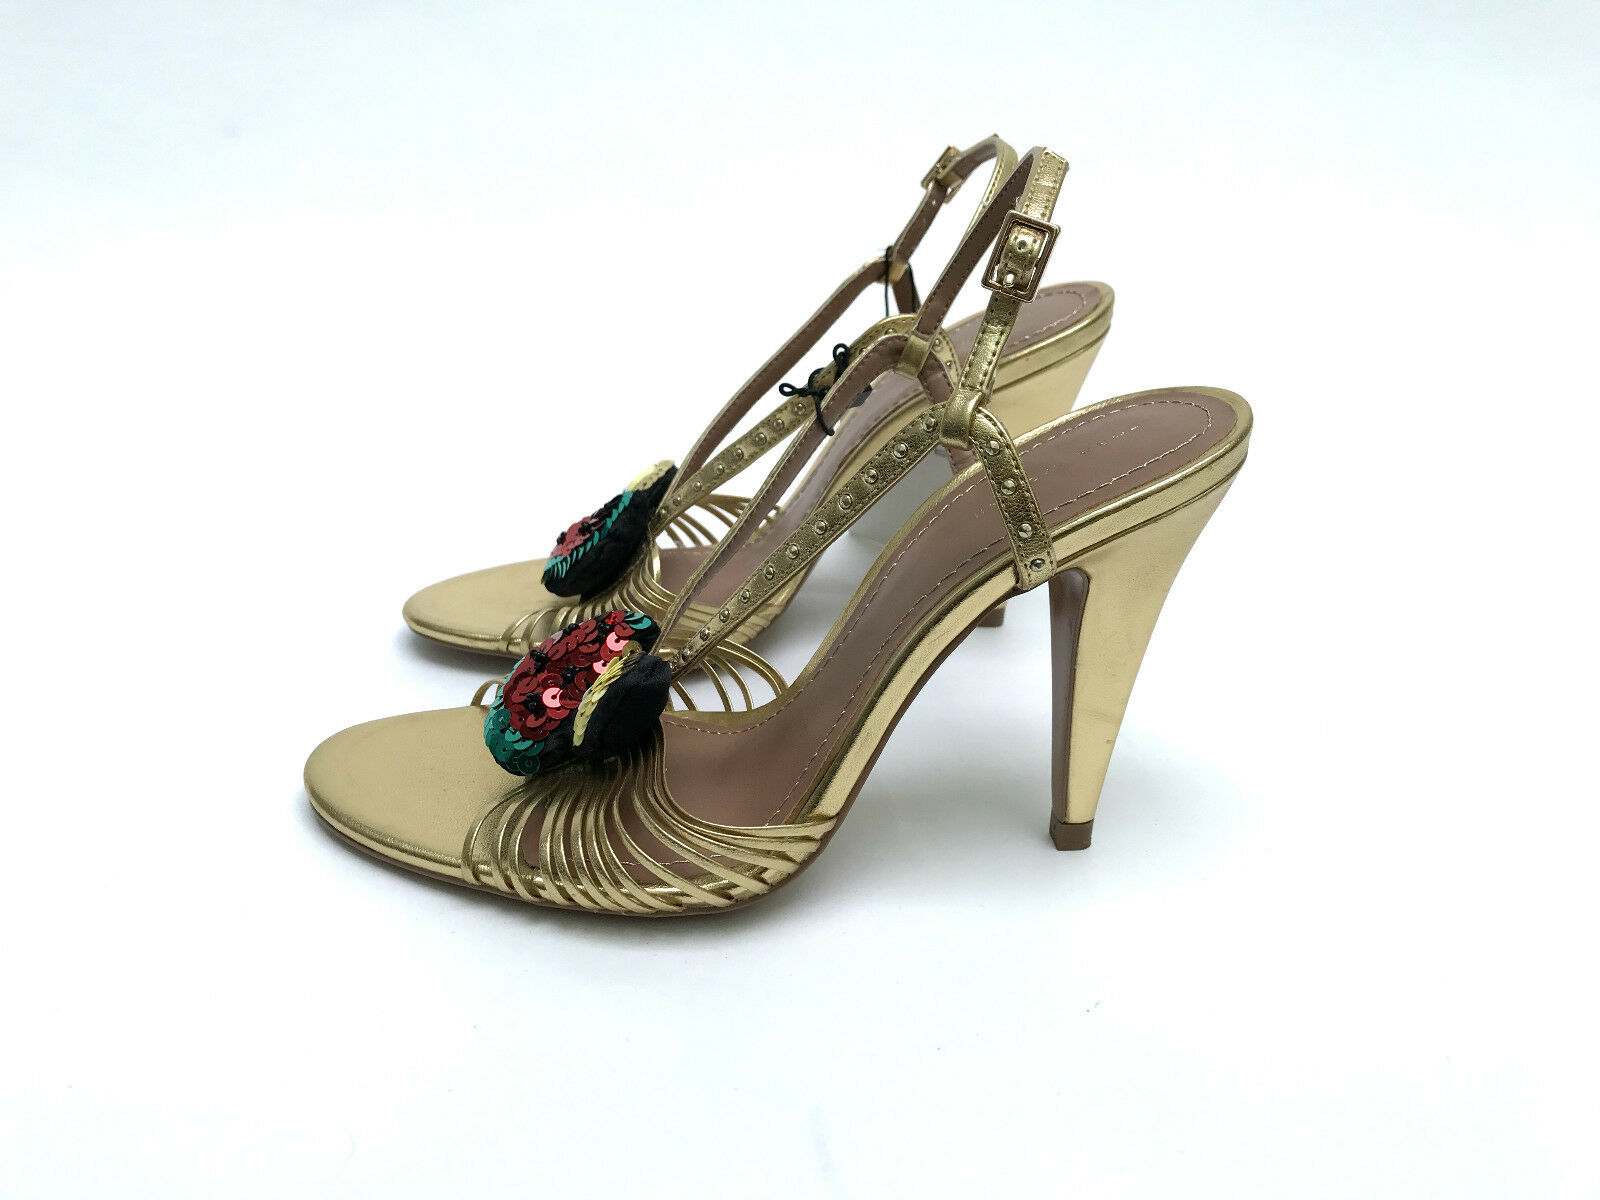 ZARA GOLD HIGH HEEL SANDALS WITH EUR37 FRUIT DETAIL SIZE UK4 EUR37 WITH US6.5 7913d4